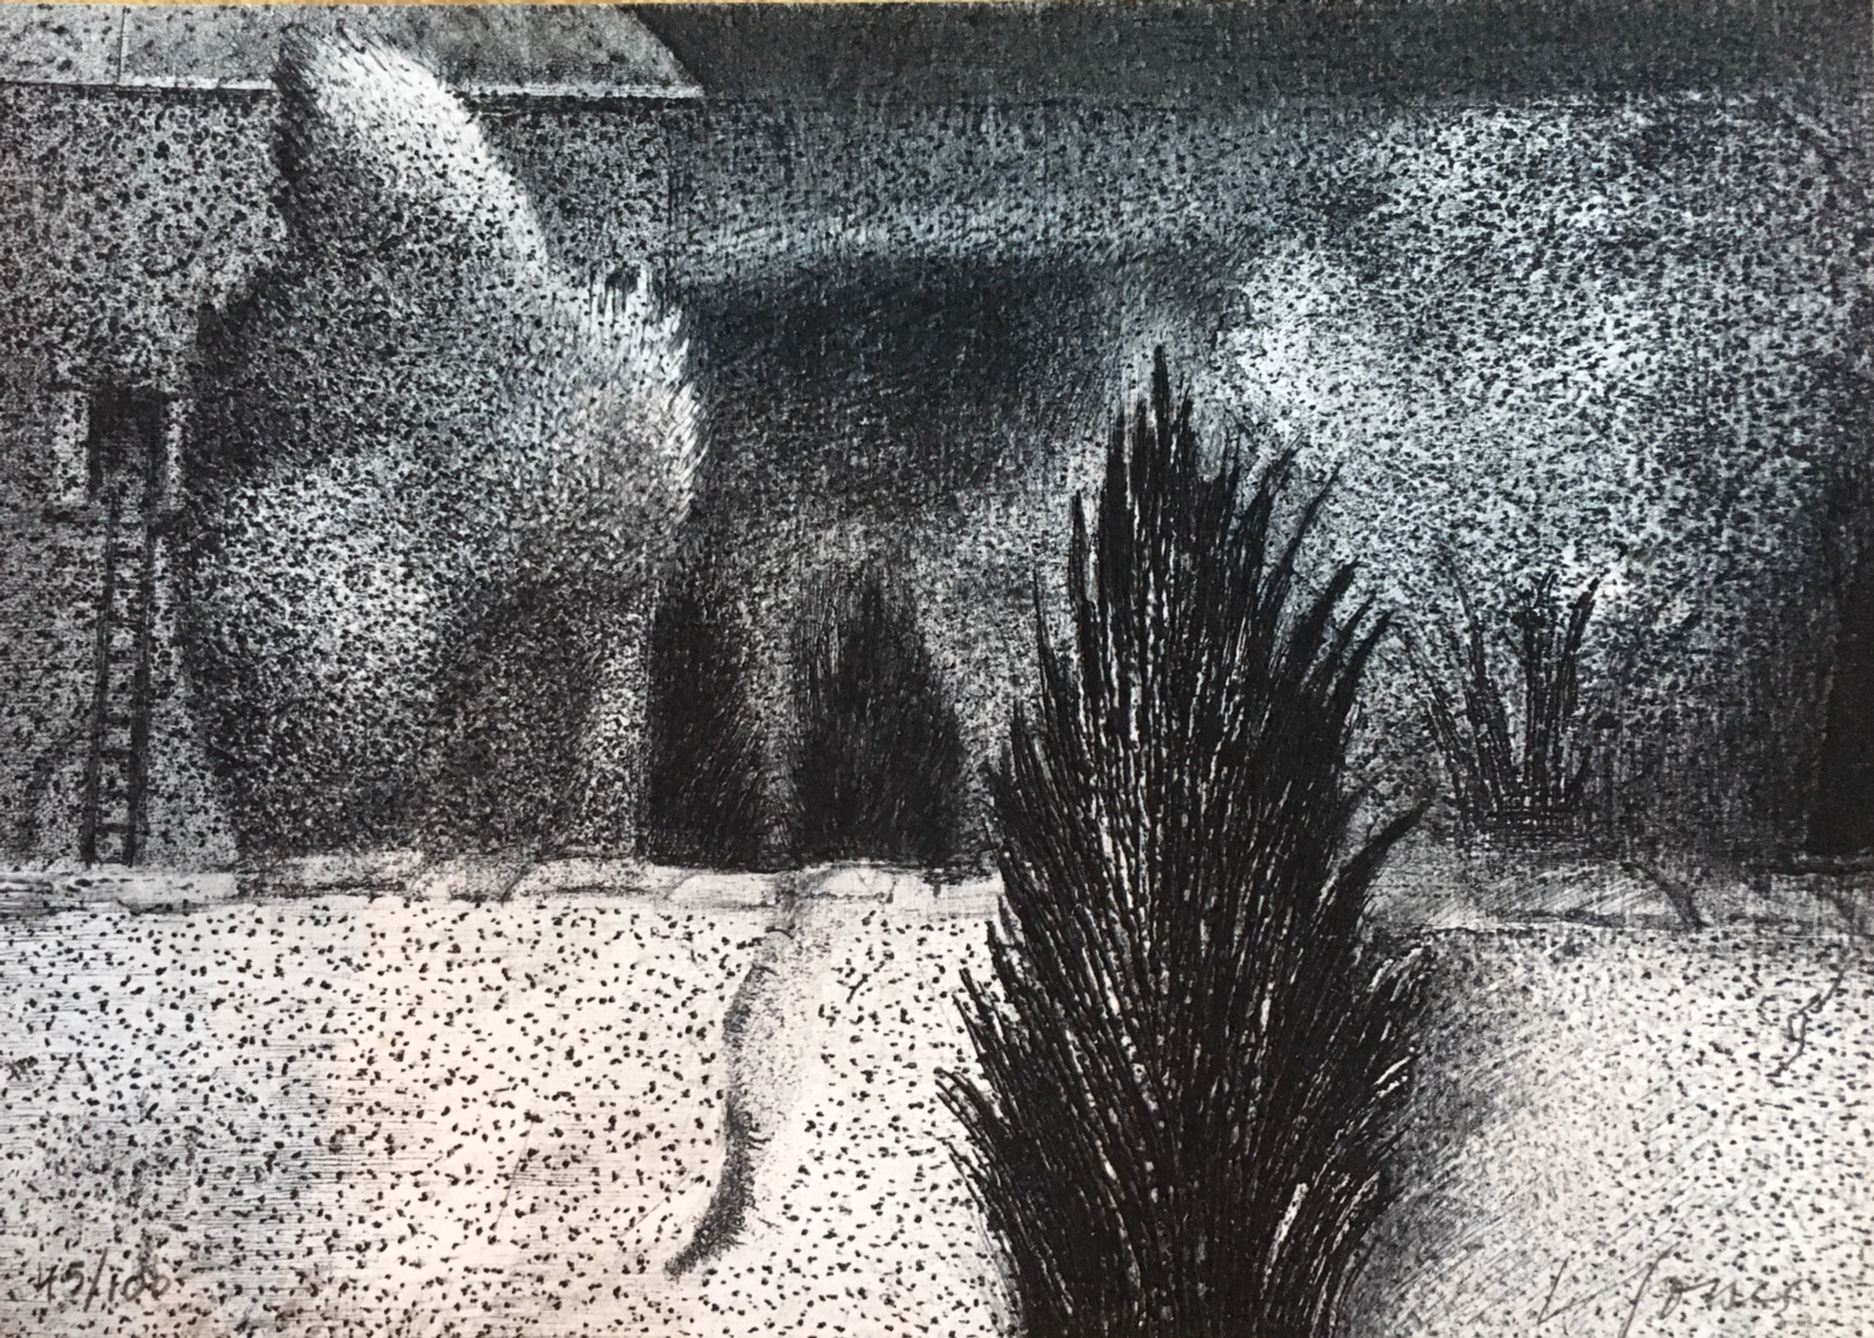 Liza Jones, Seurat Elopes, etching / drypoint